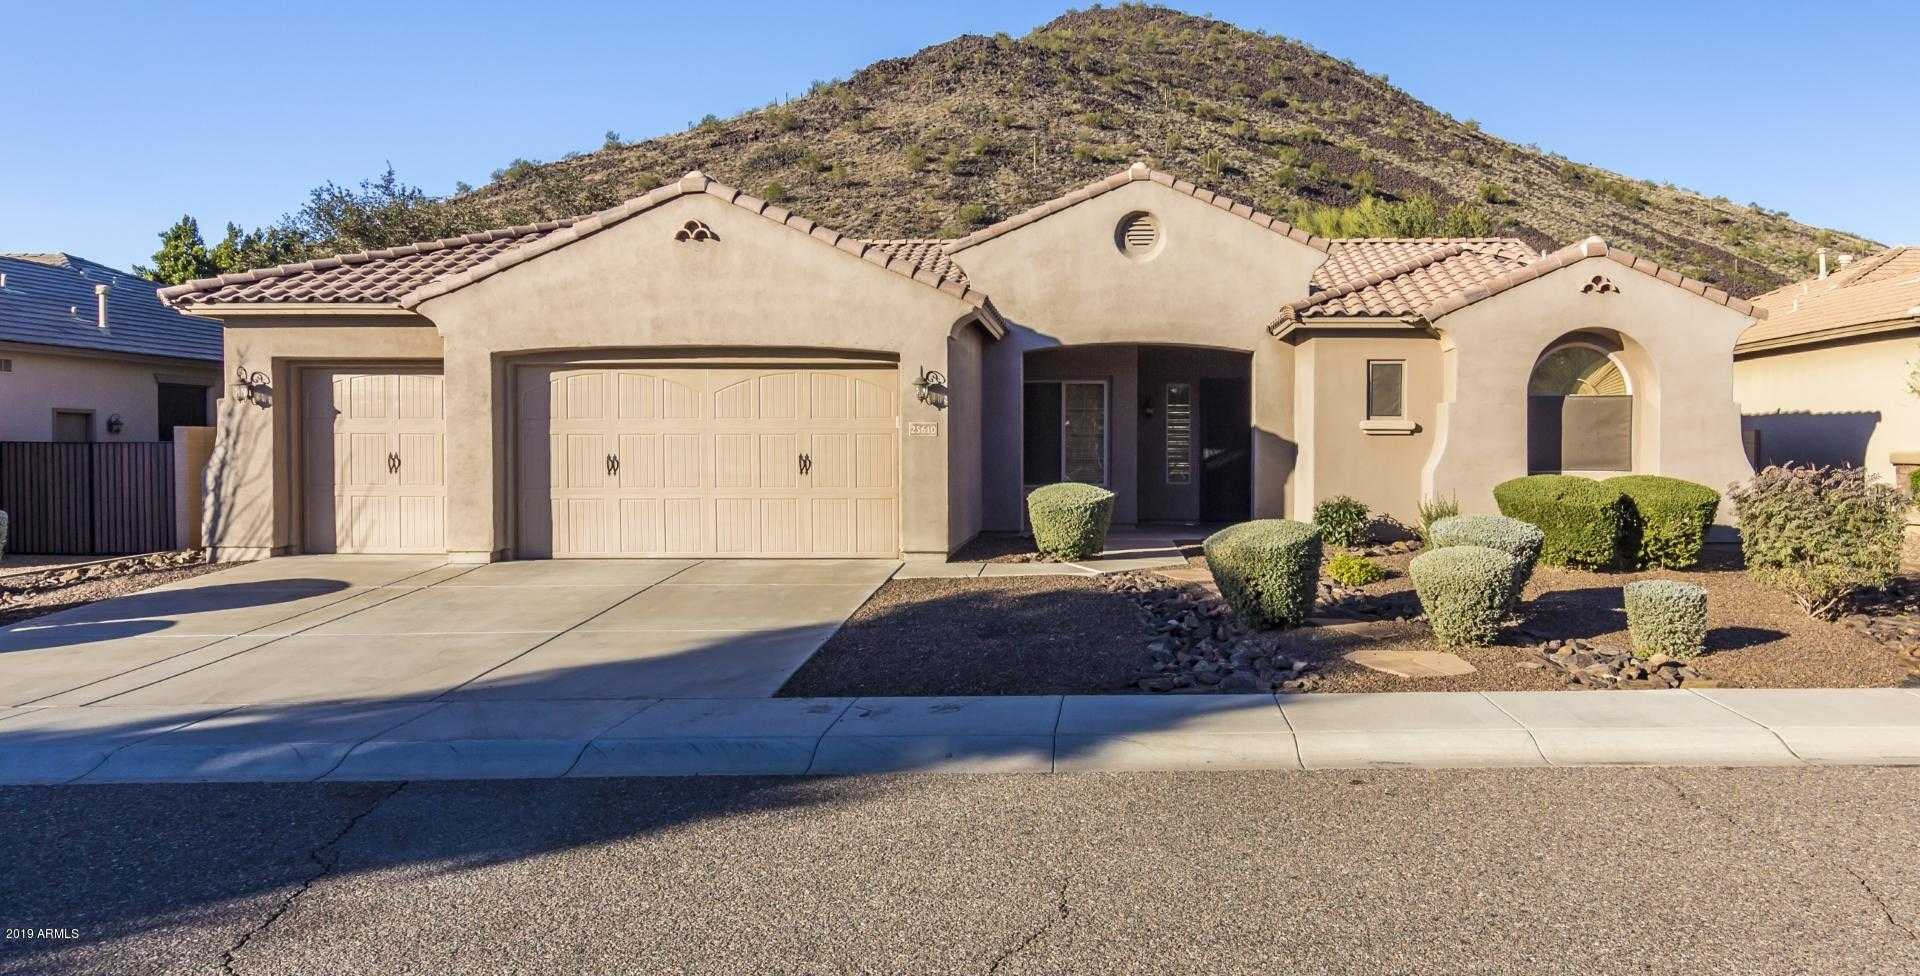 $525,000 - 4Br/3Ba - Home for Sale in Stetson Valley Parcels 5 13 14, Phoenix